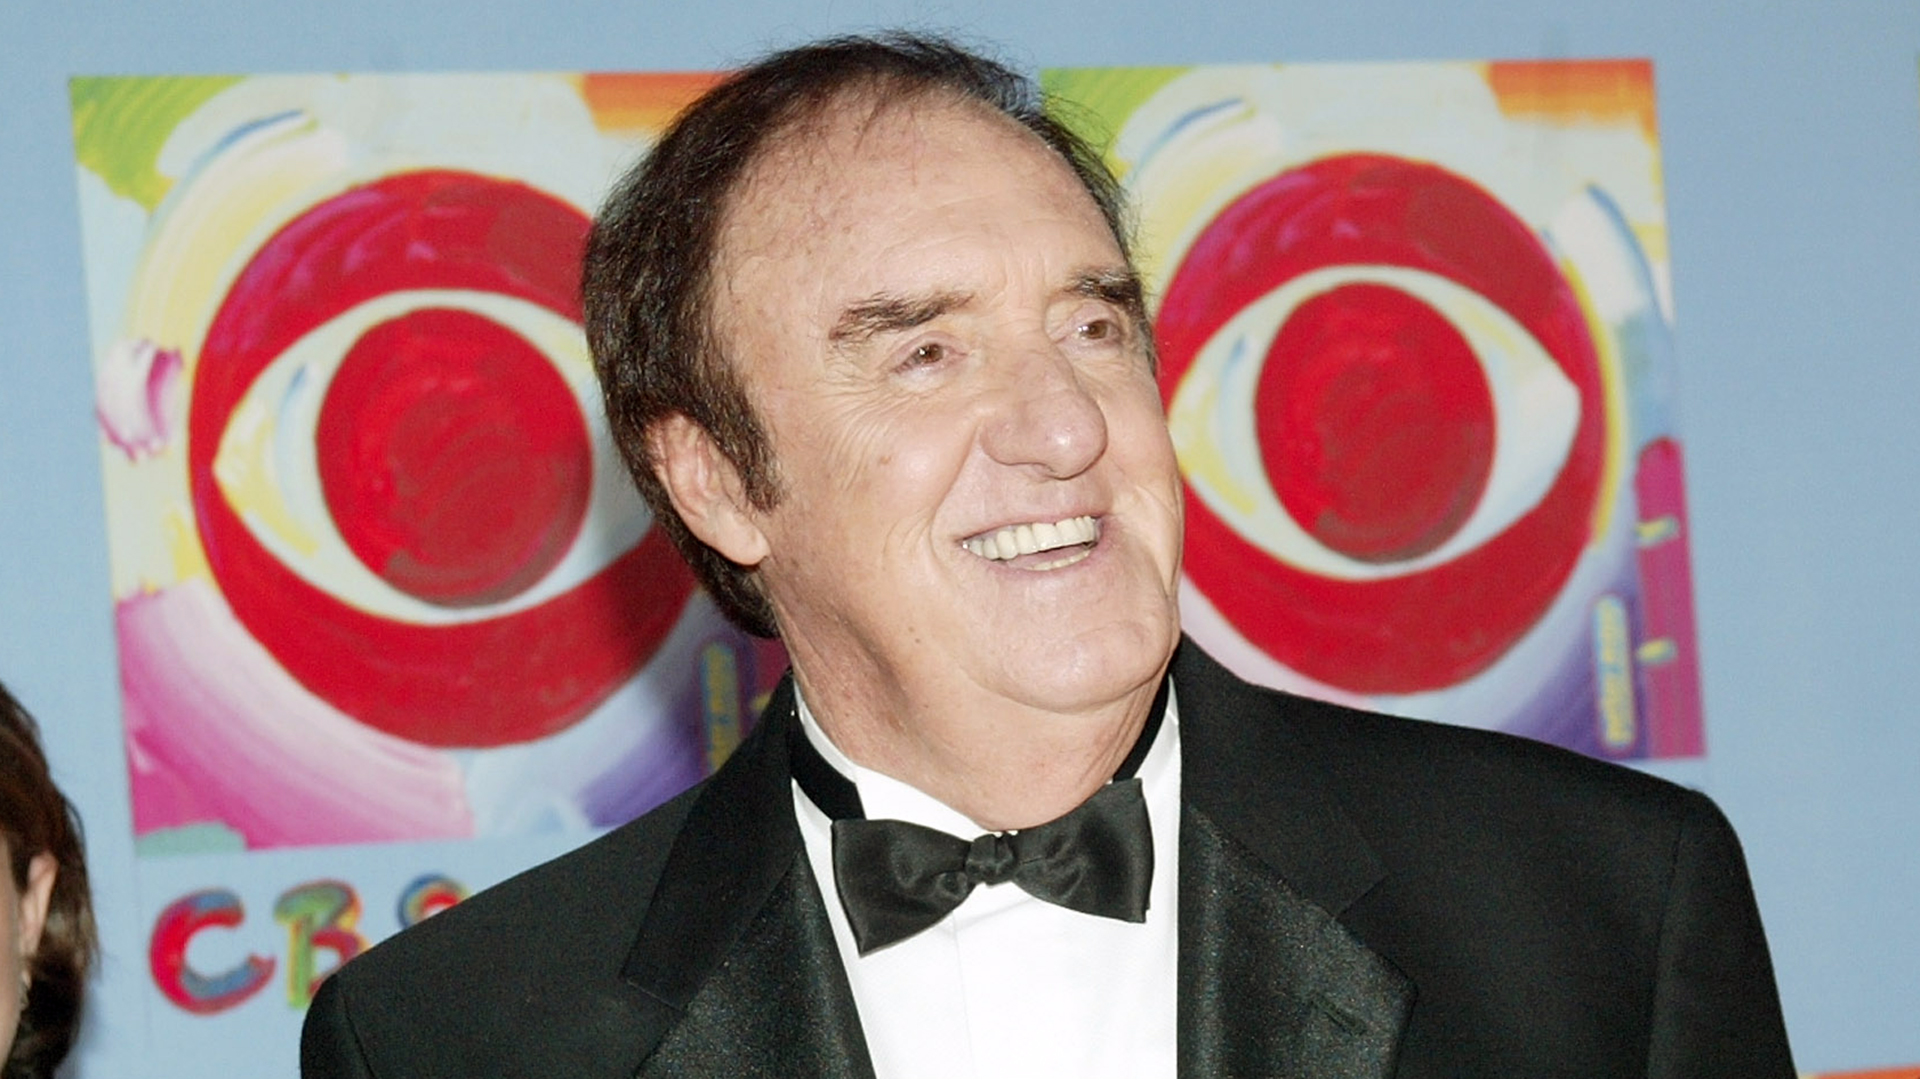 Jim Nabors Tv S Gomer Pyle Dead At 87 Stan cadwallader is an american firefighter. kolr